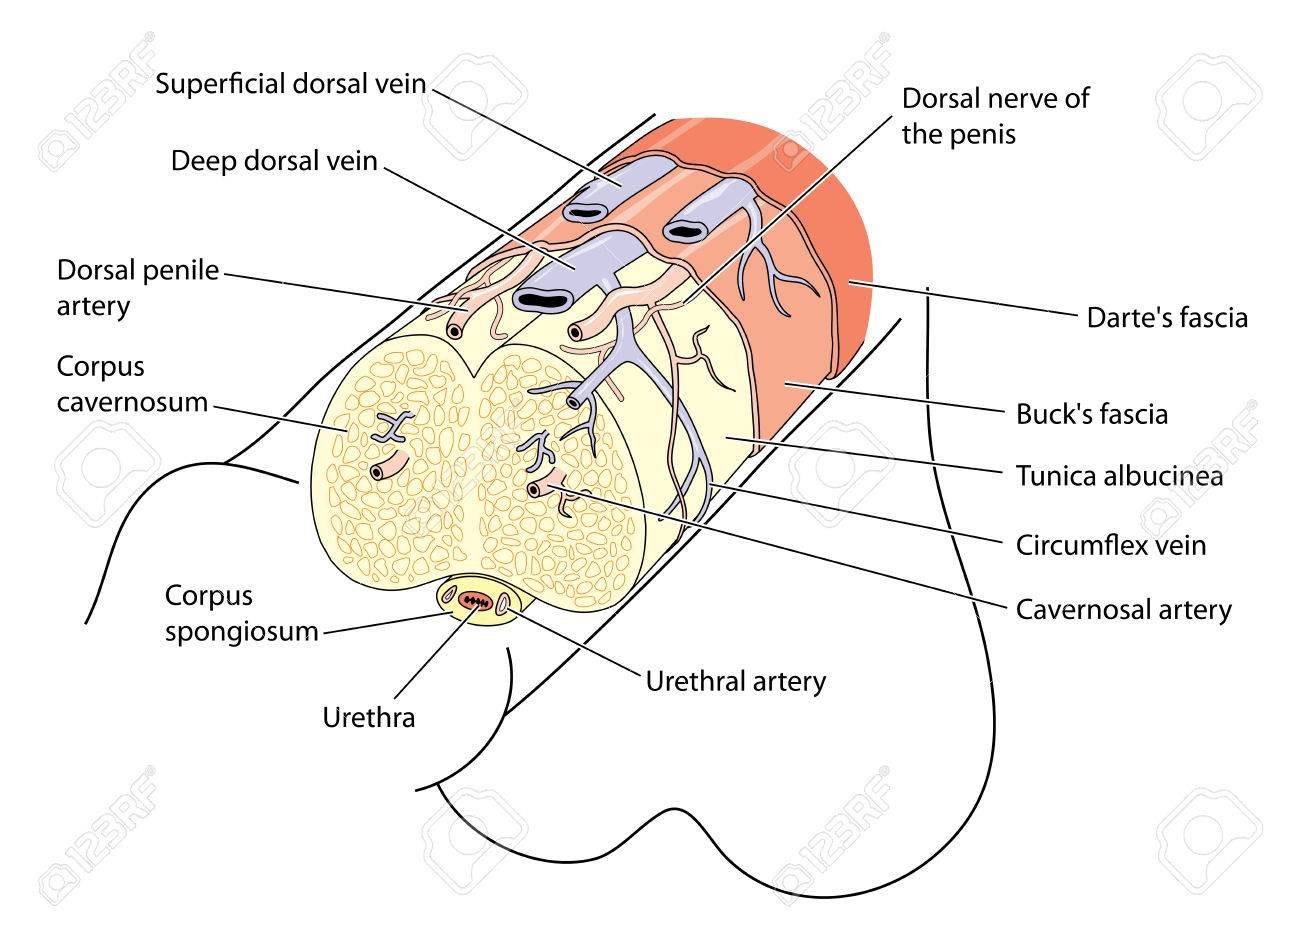 Anatomy Of The Penis Showing The Major Structures Blood Vessels